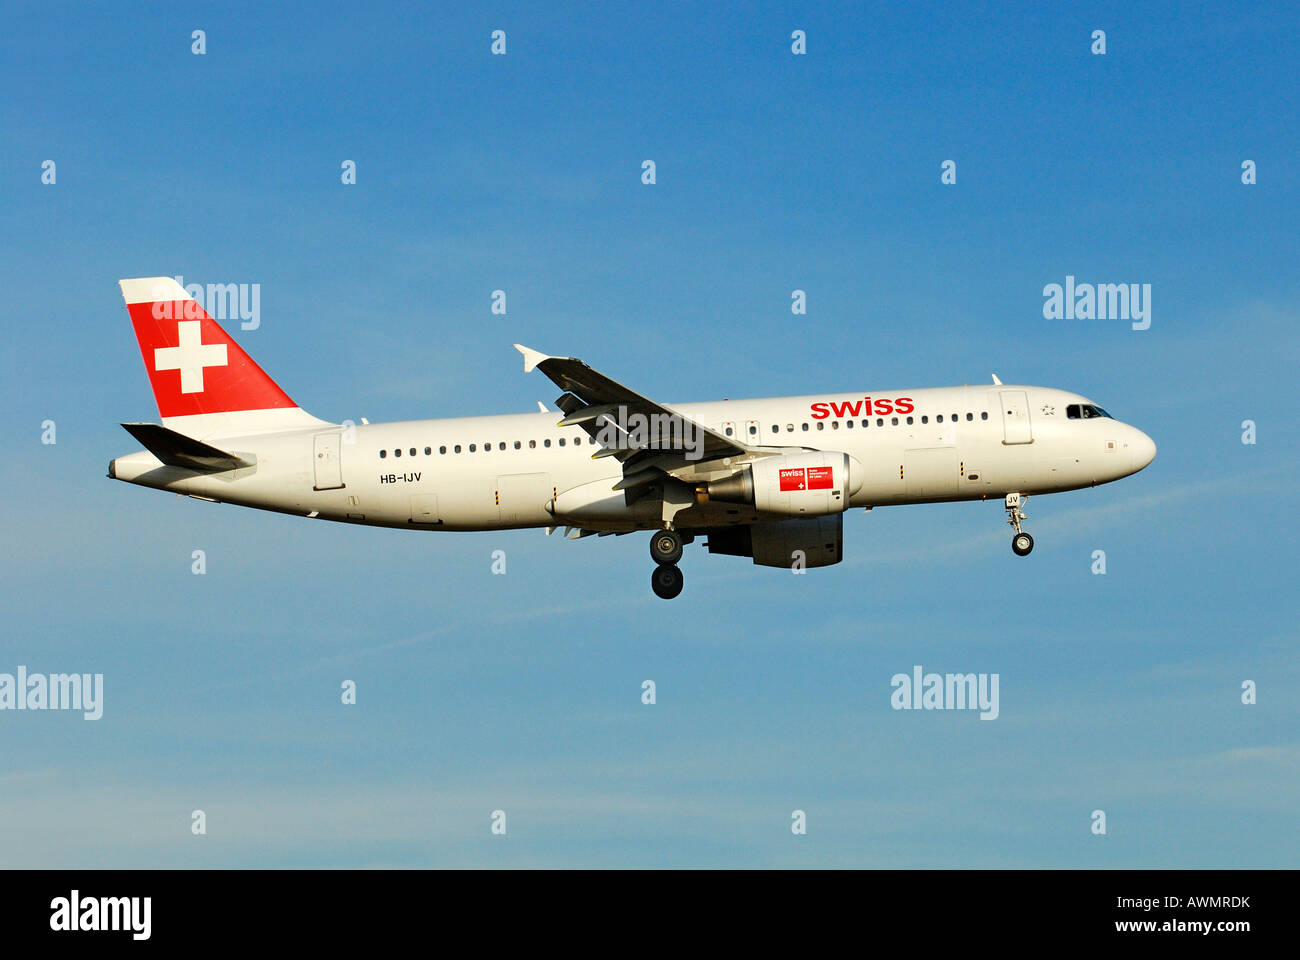 Airbus A320-214 from the Swiss International Air Lines AG - Stock Image